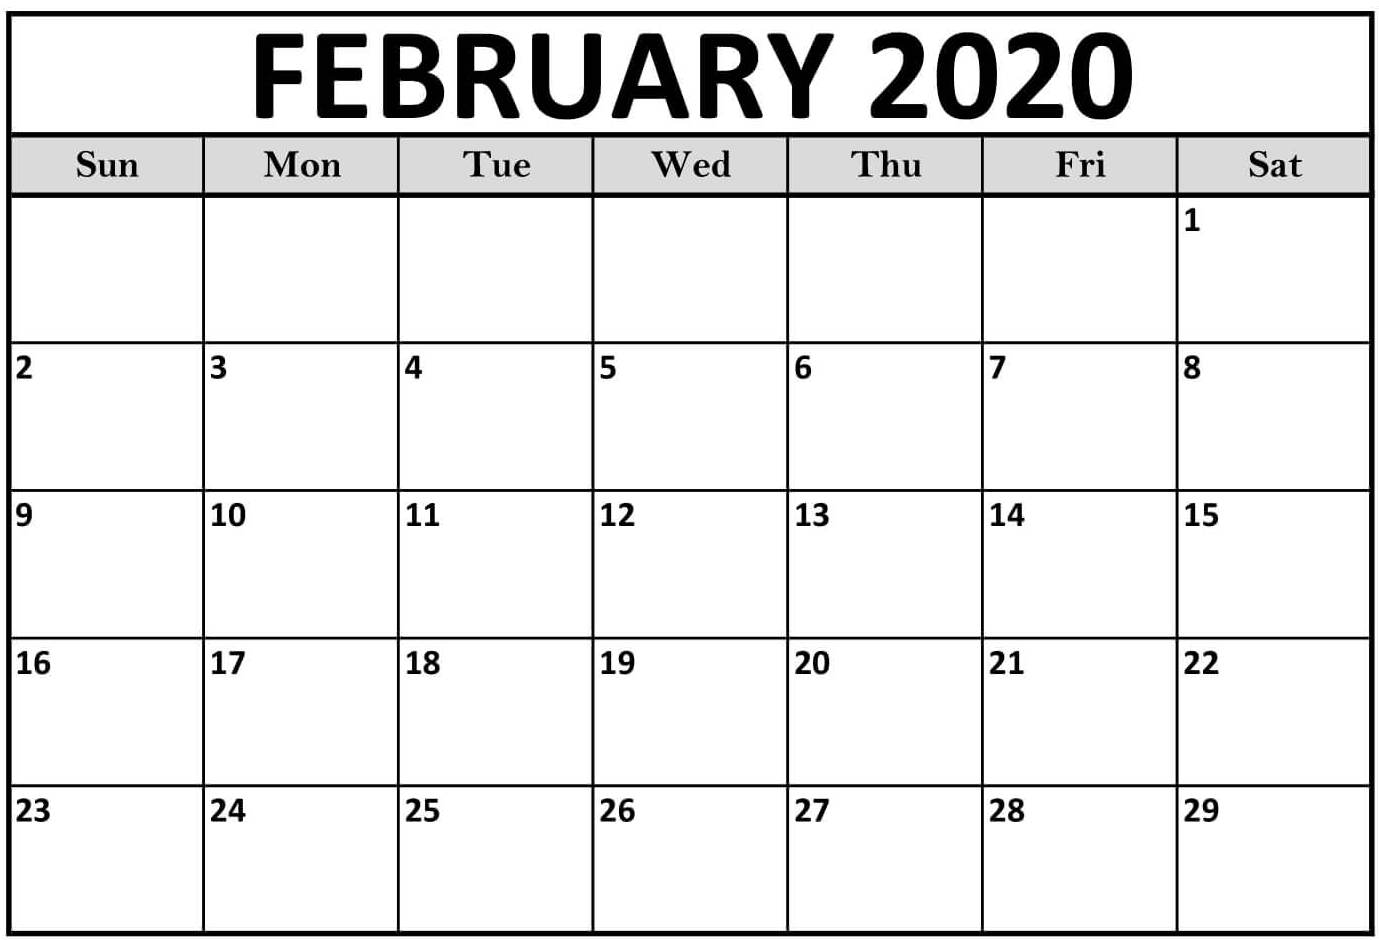 Feb 2020 Calendar Printable Template